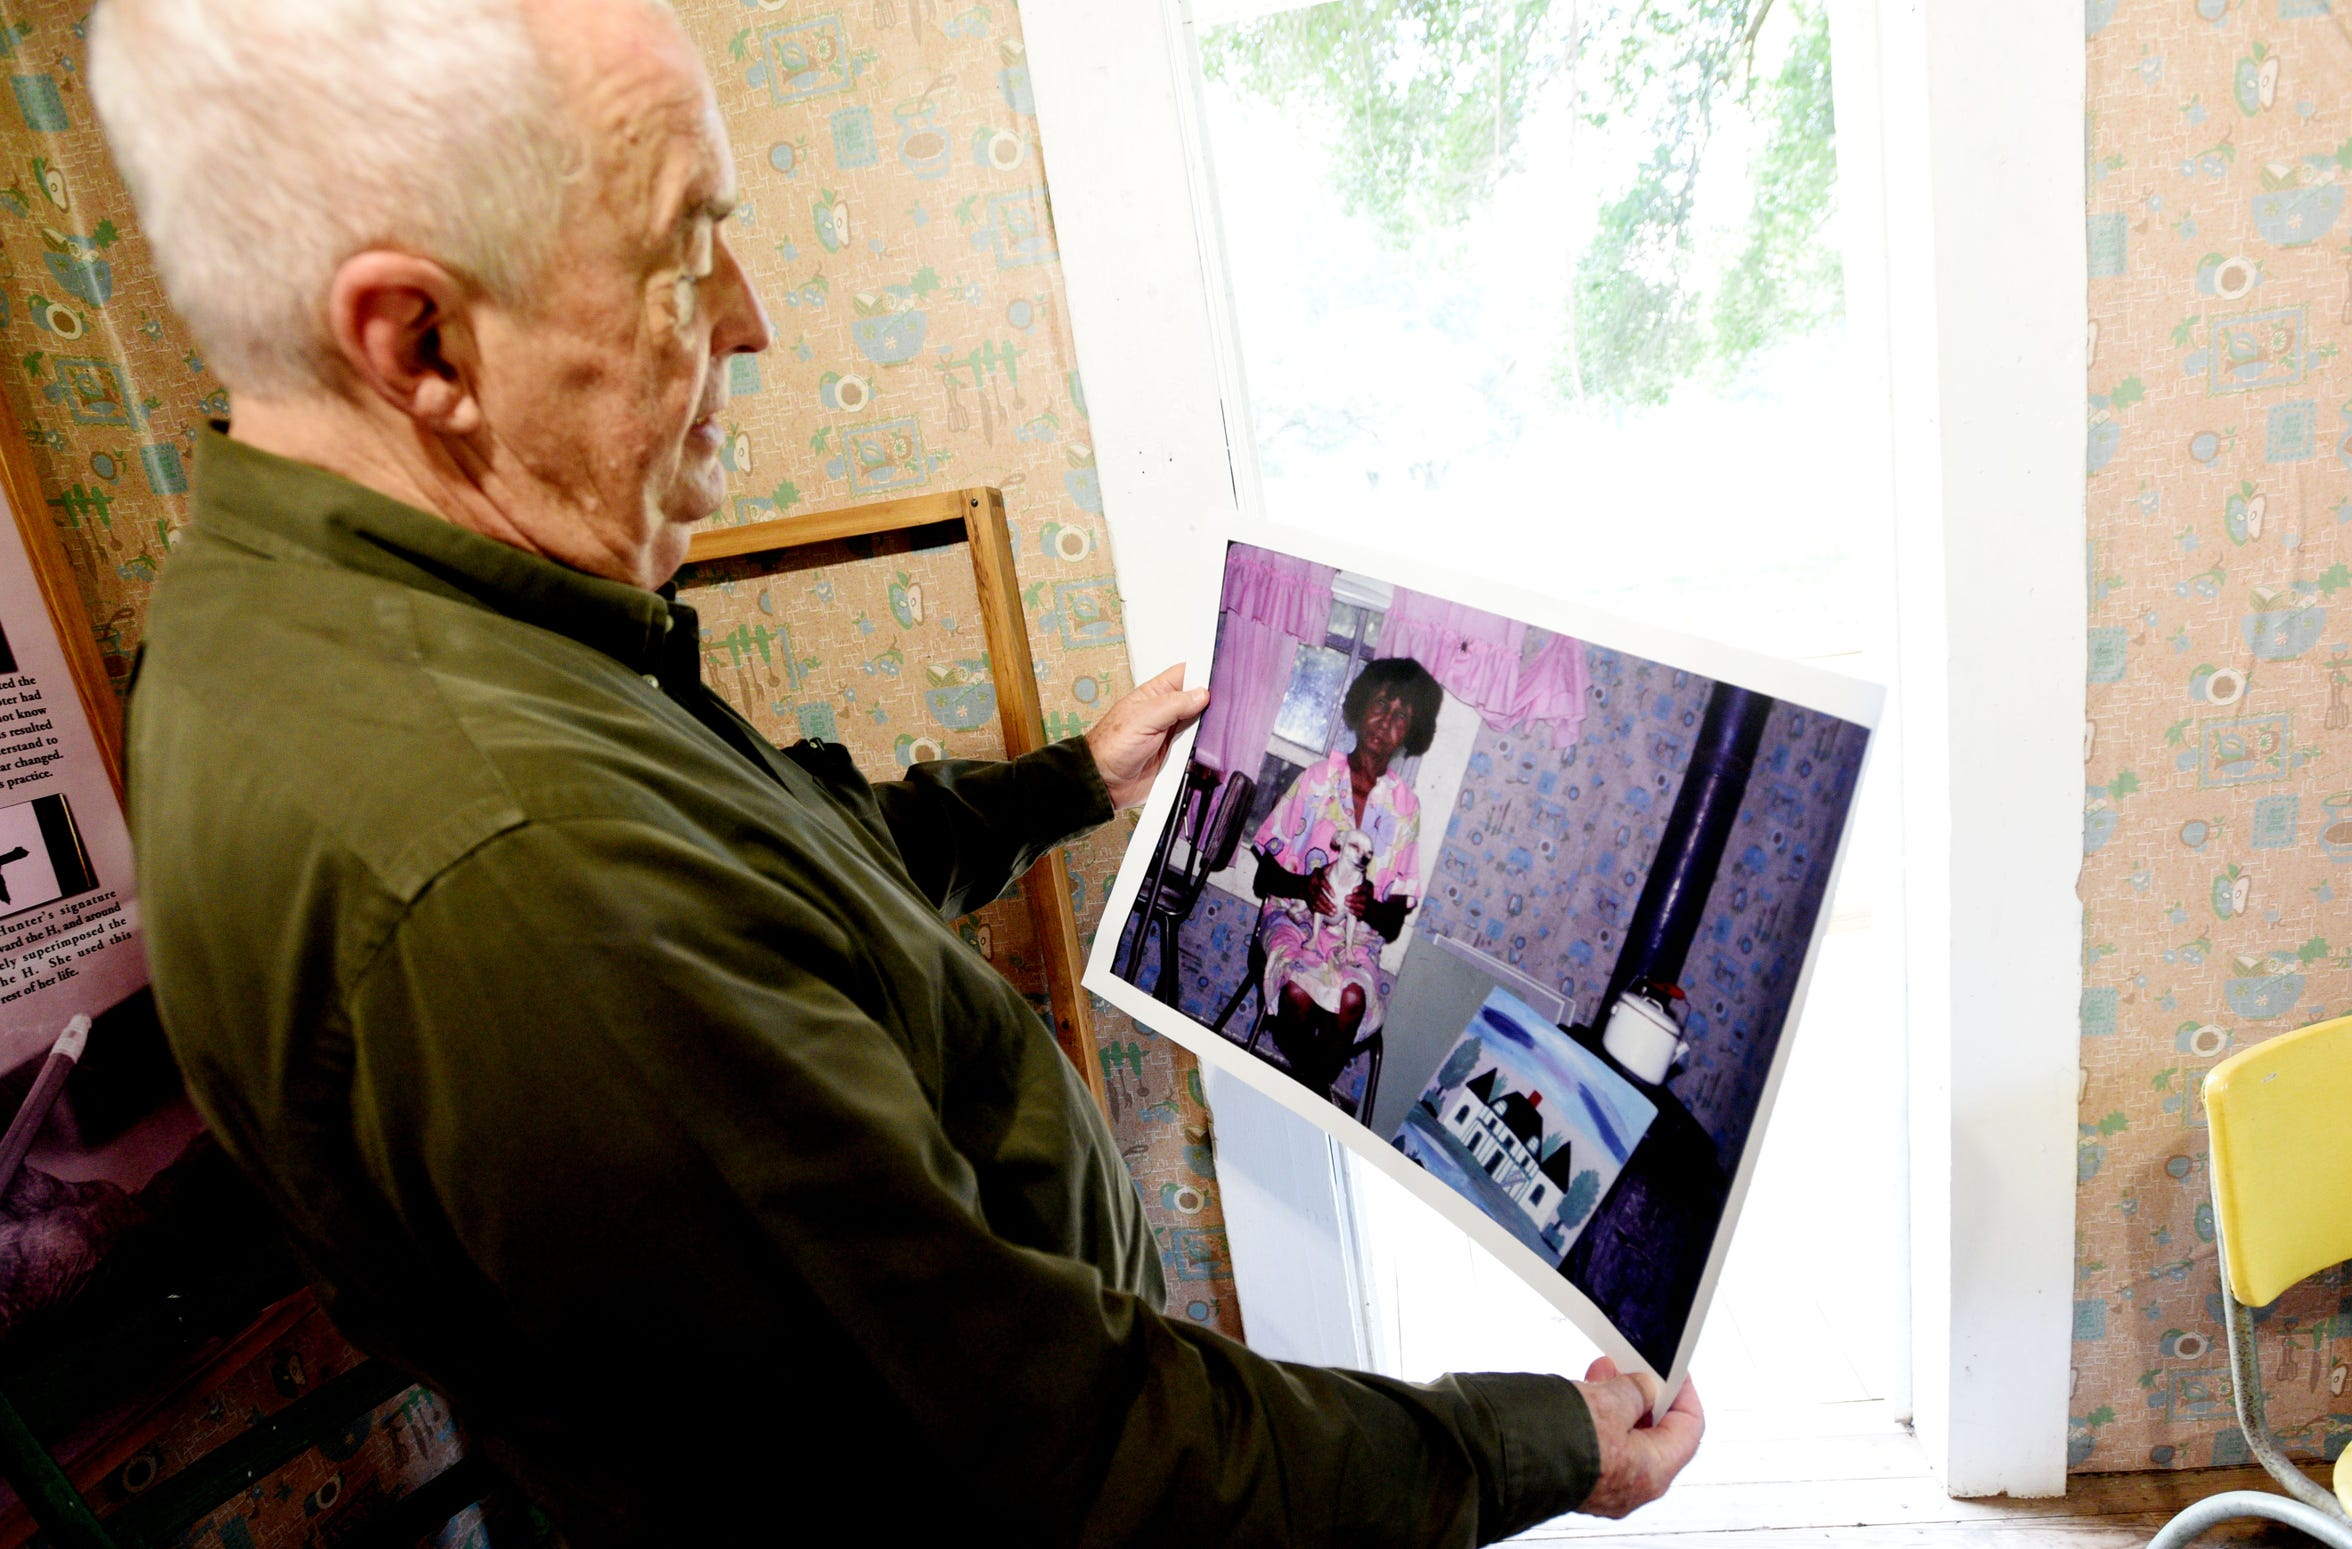 Tommy Whitehead, a friend of Clementine Hunter, looks at a photo he took of her in her house on Melrose Plantation. They used that photo to reproduce the wallpaper in her kitchen.